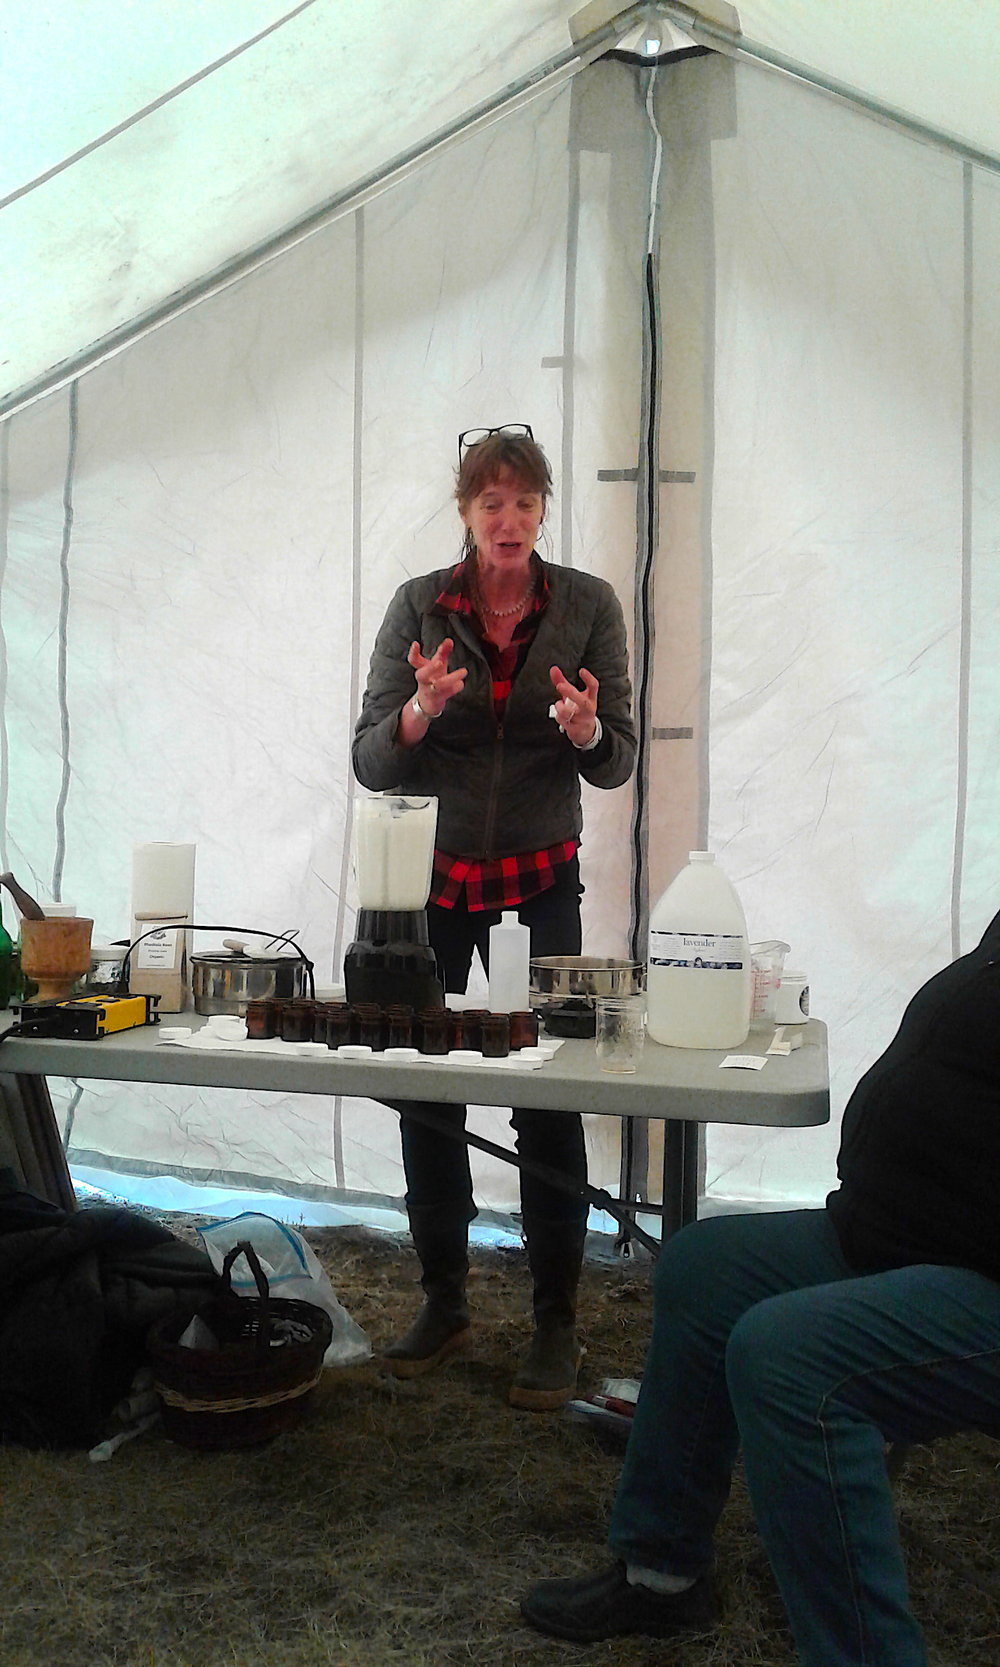 Beverley Gray at KFN Culture and Harvest Gathering Camp teaching us how to make arnica creams (2018 Aug)